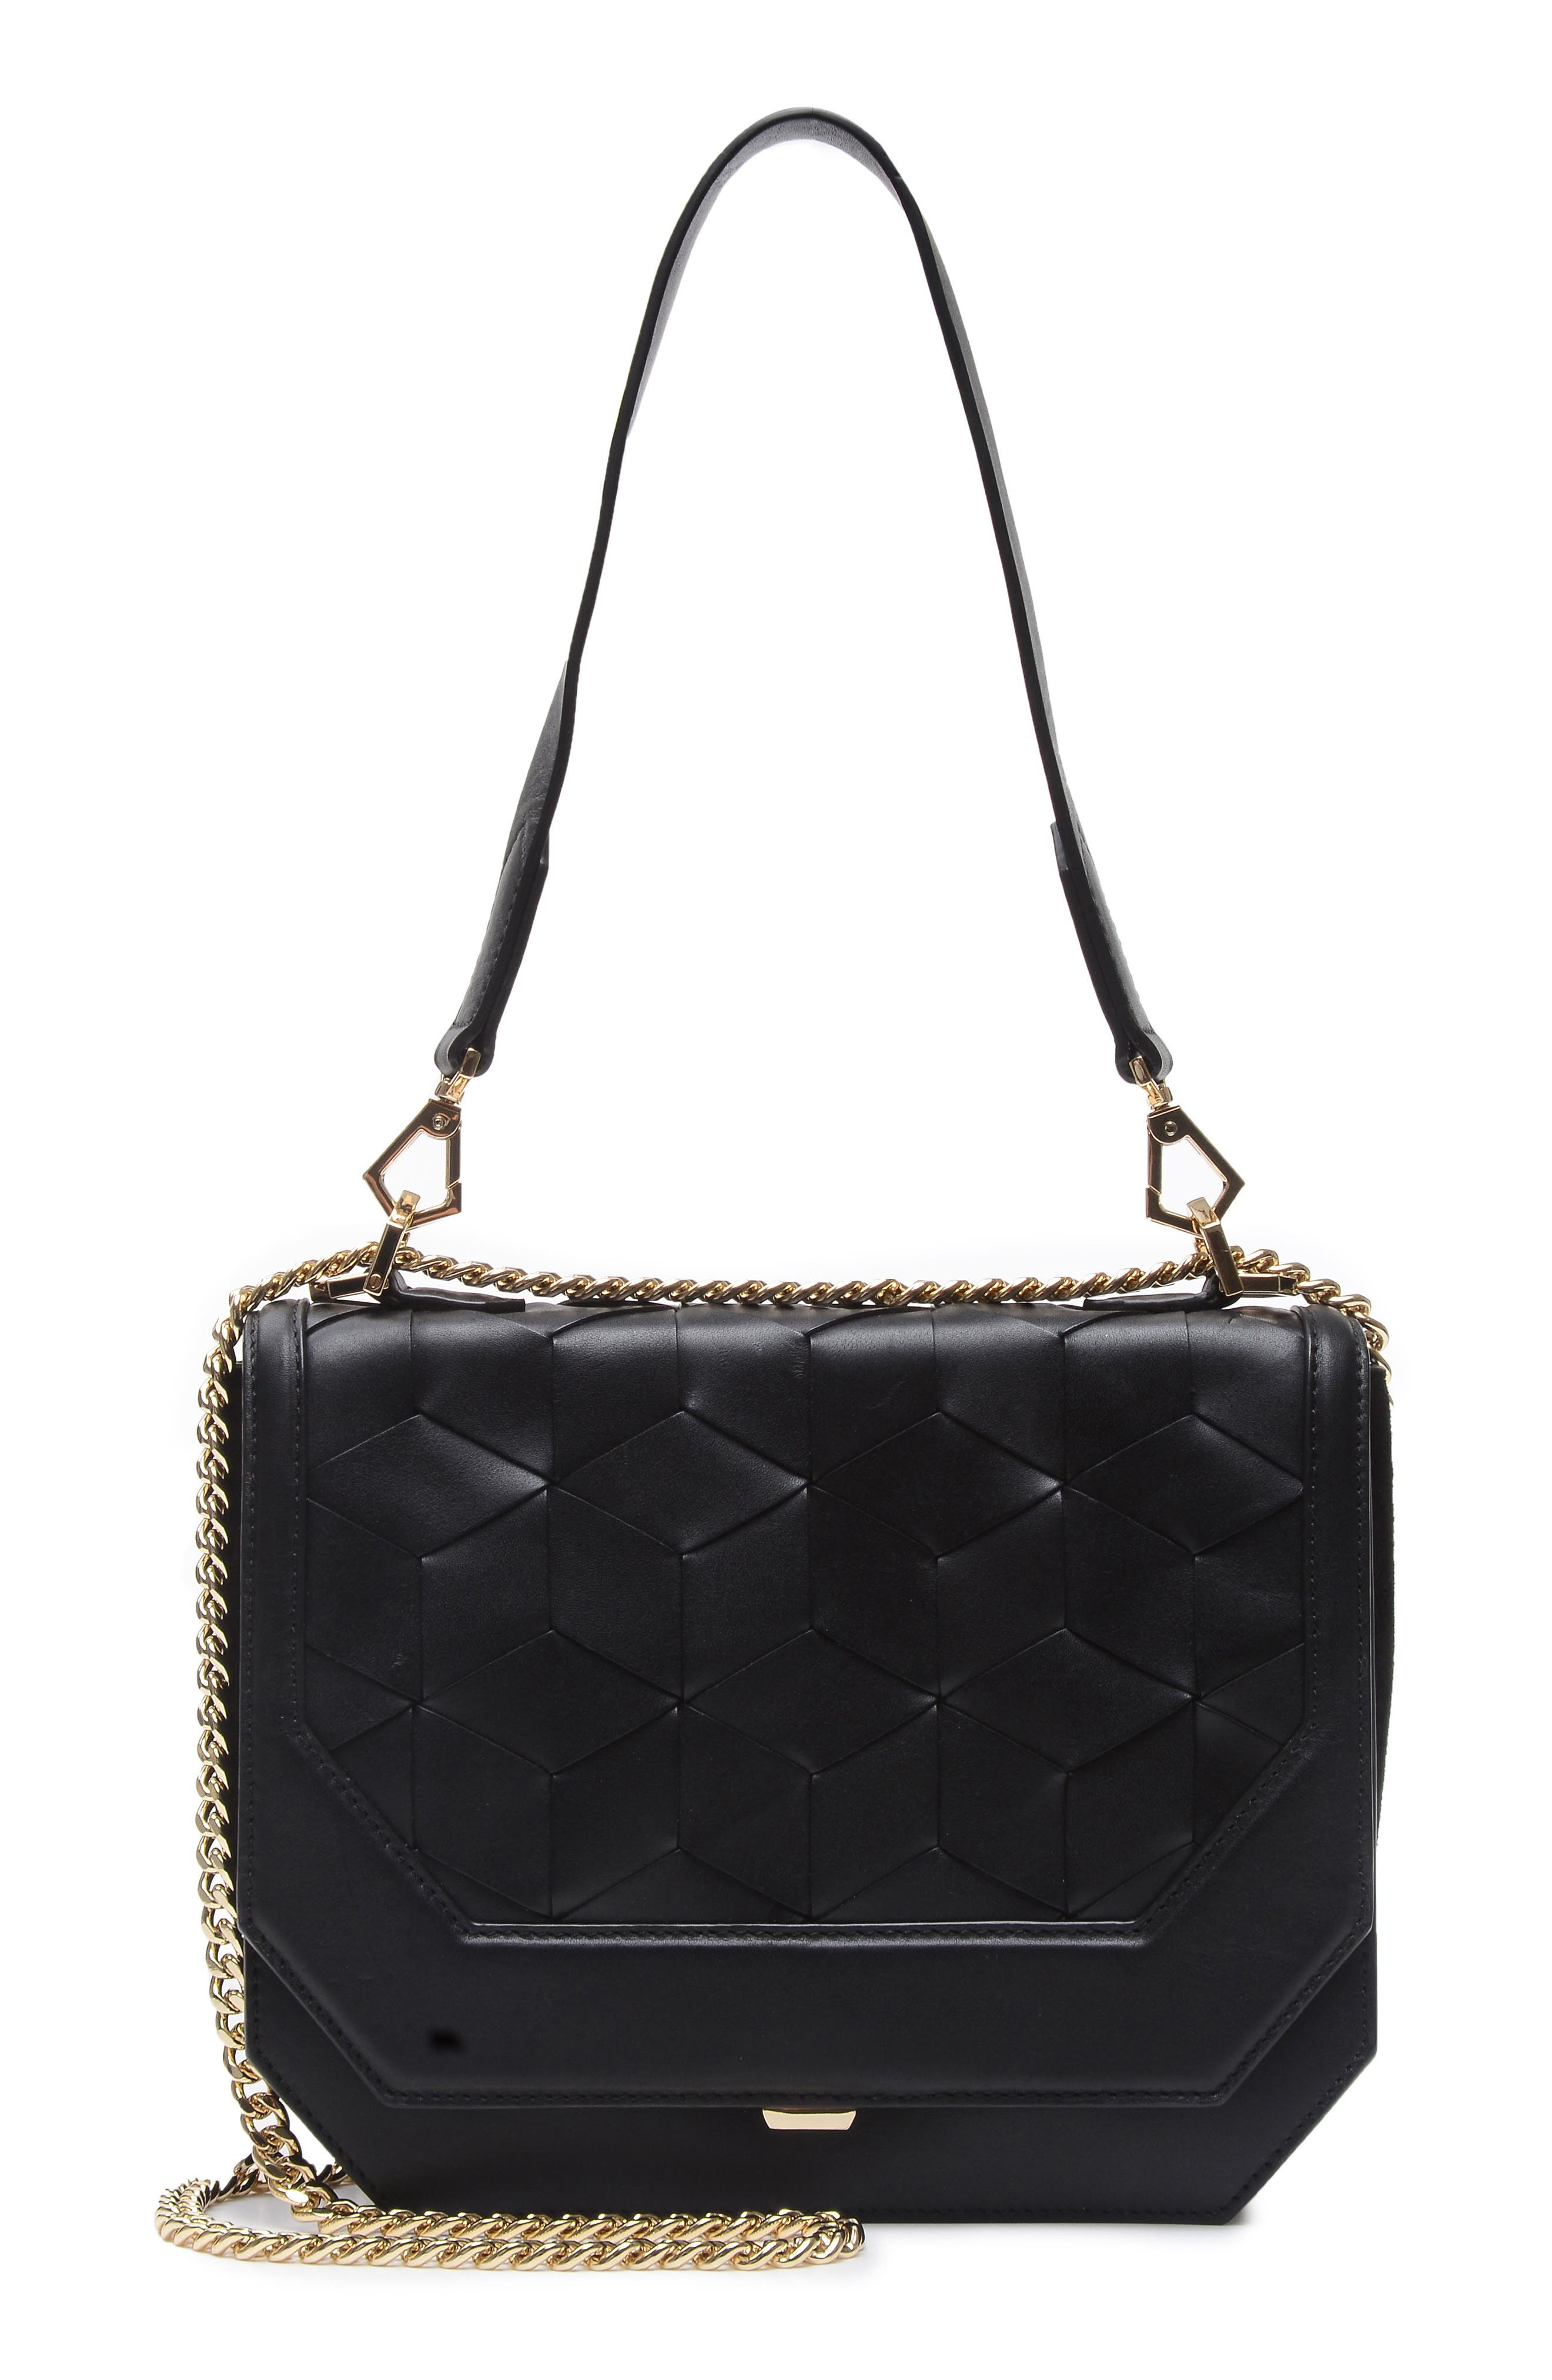 WELDEN SUPINE LEATHER SHOULDER BAG - BLACK